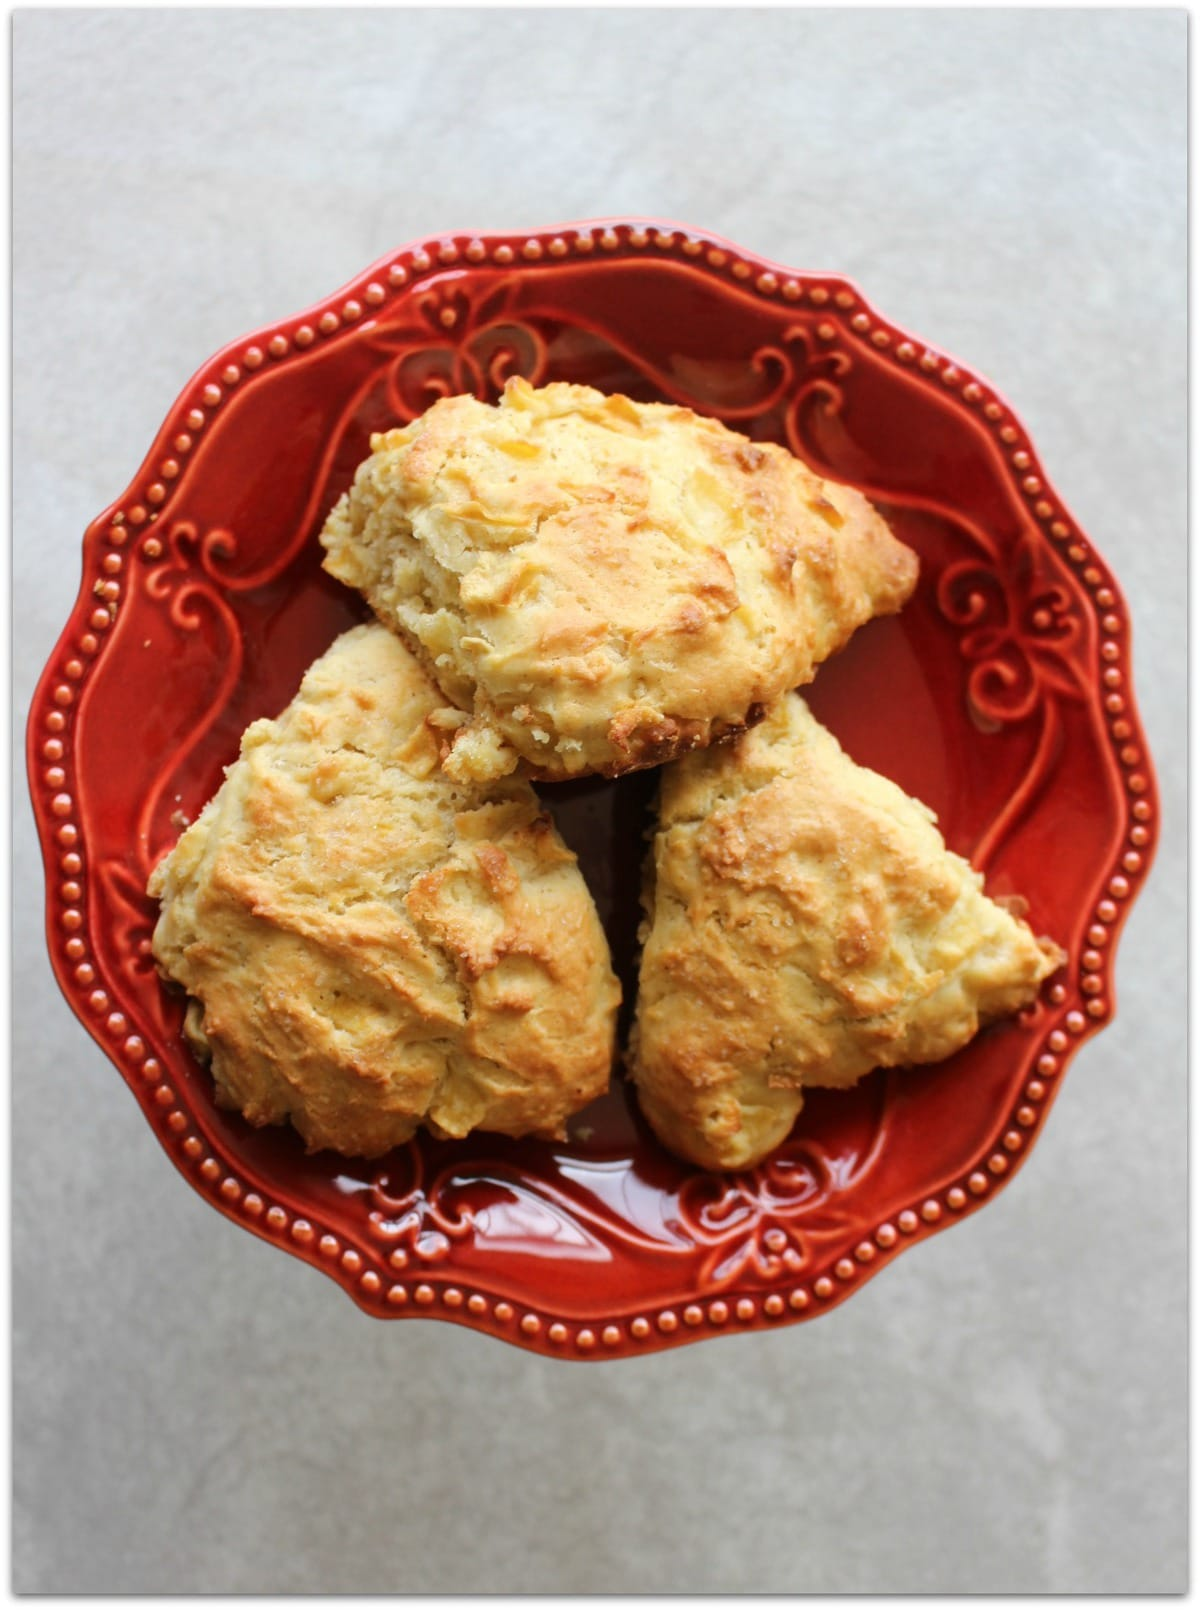 Scones on a red plate.